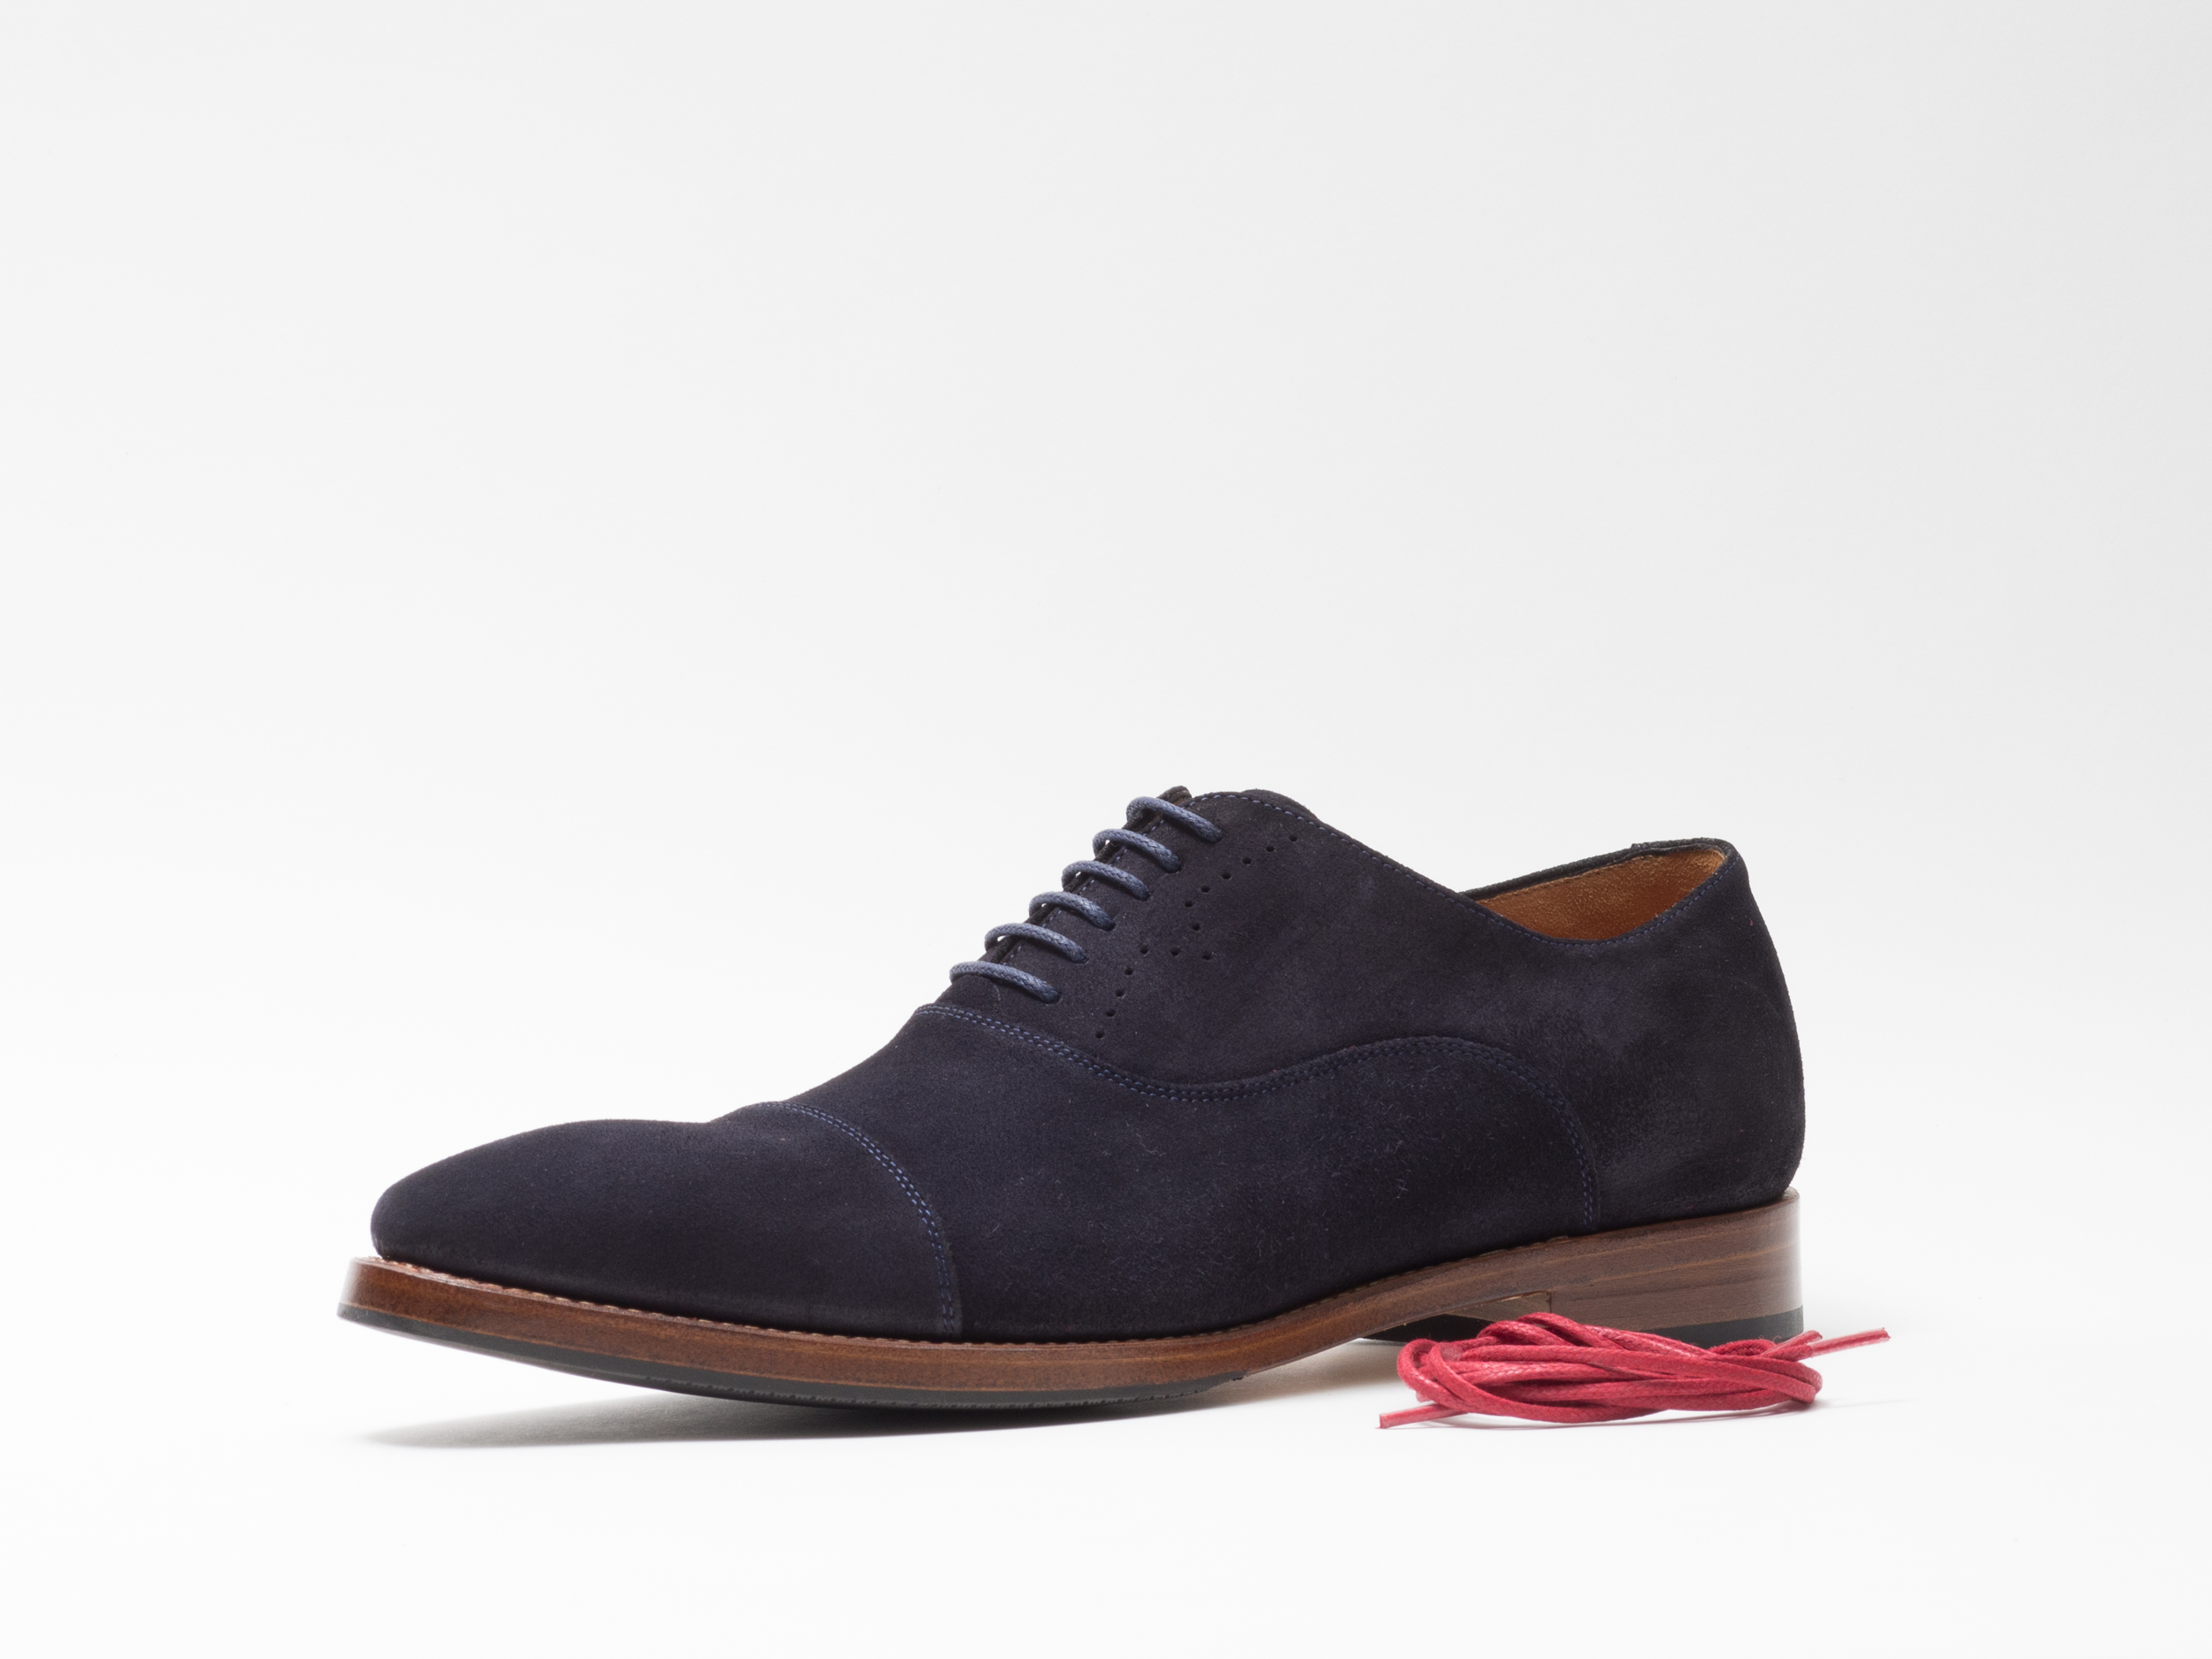 DRESS SHOE NAVY SUEDE